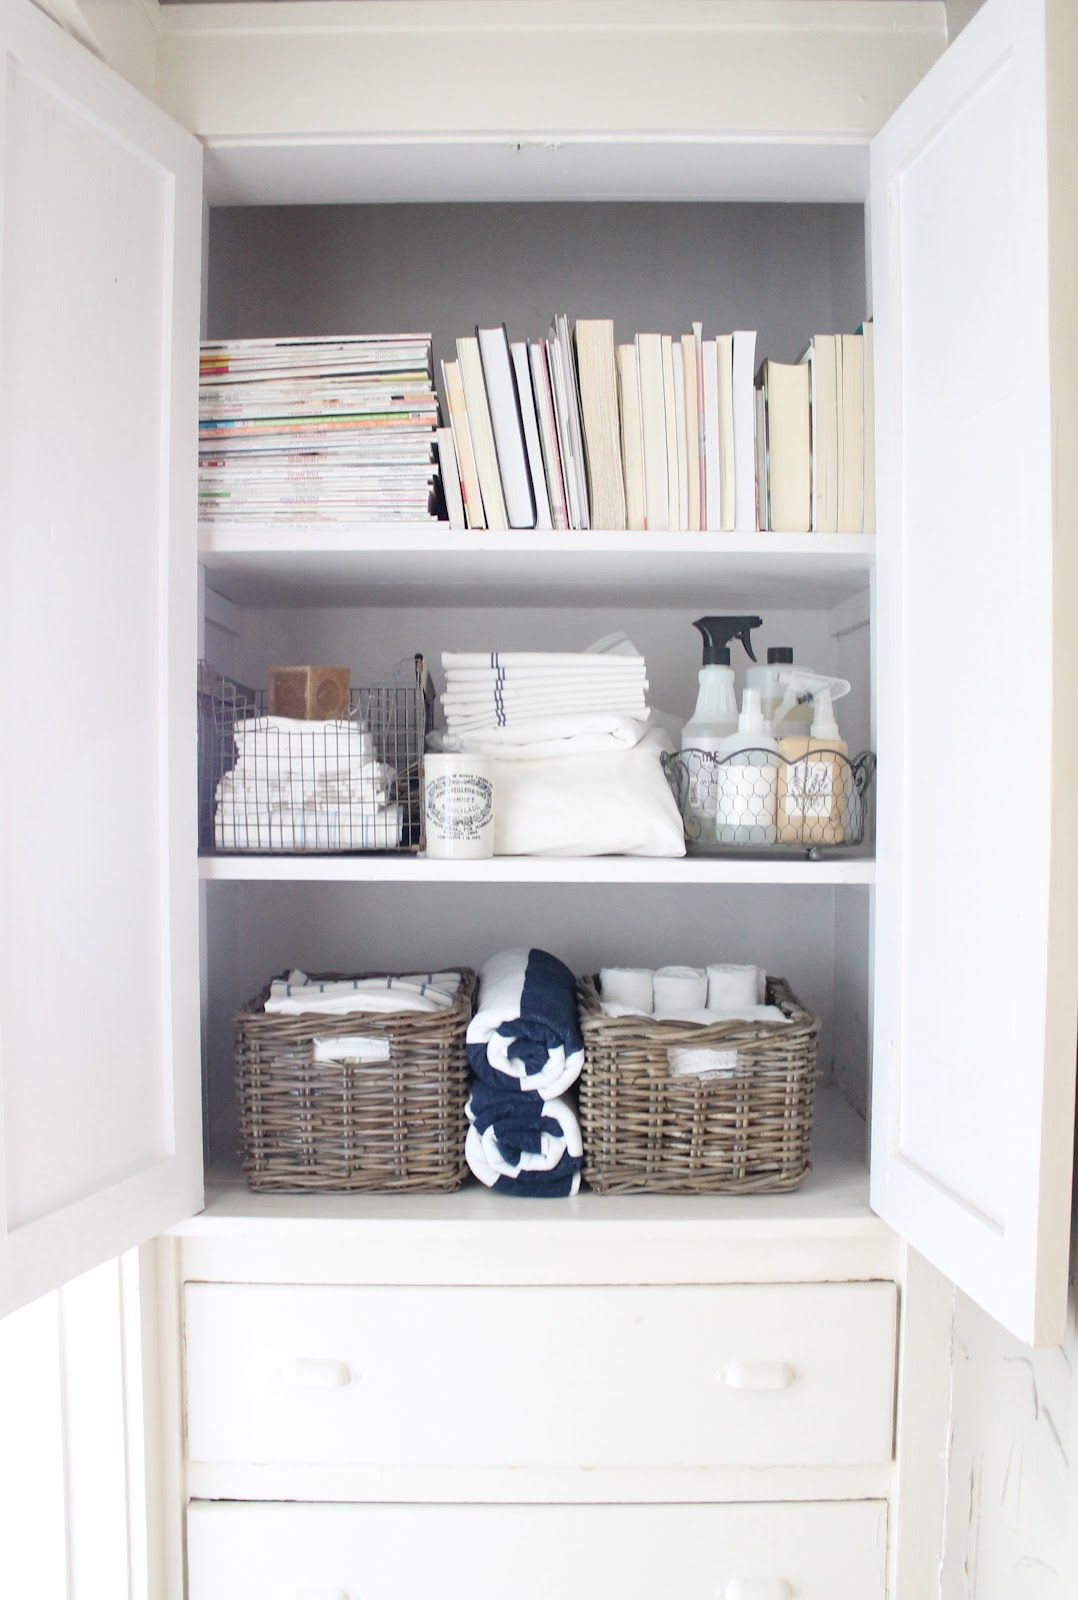 Organized linen closet. Great idea to move bathroom cleaning ...